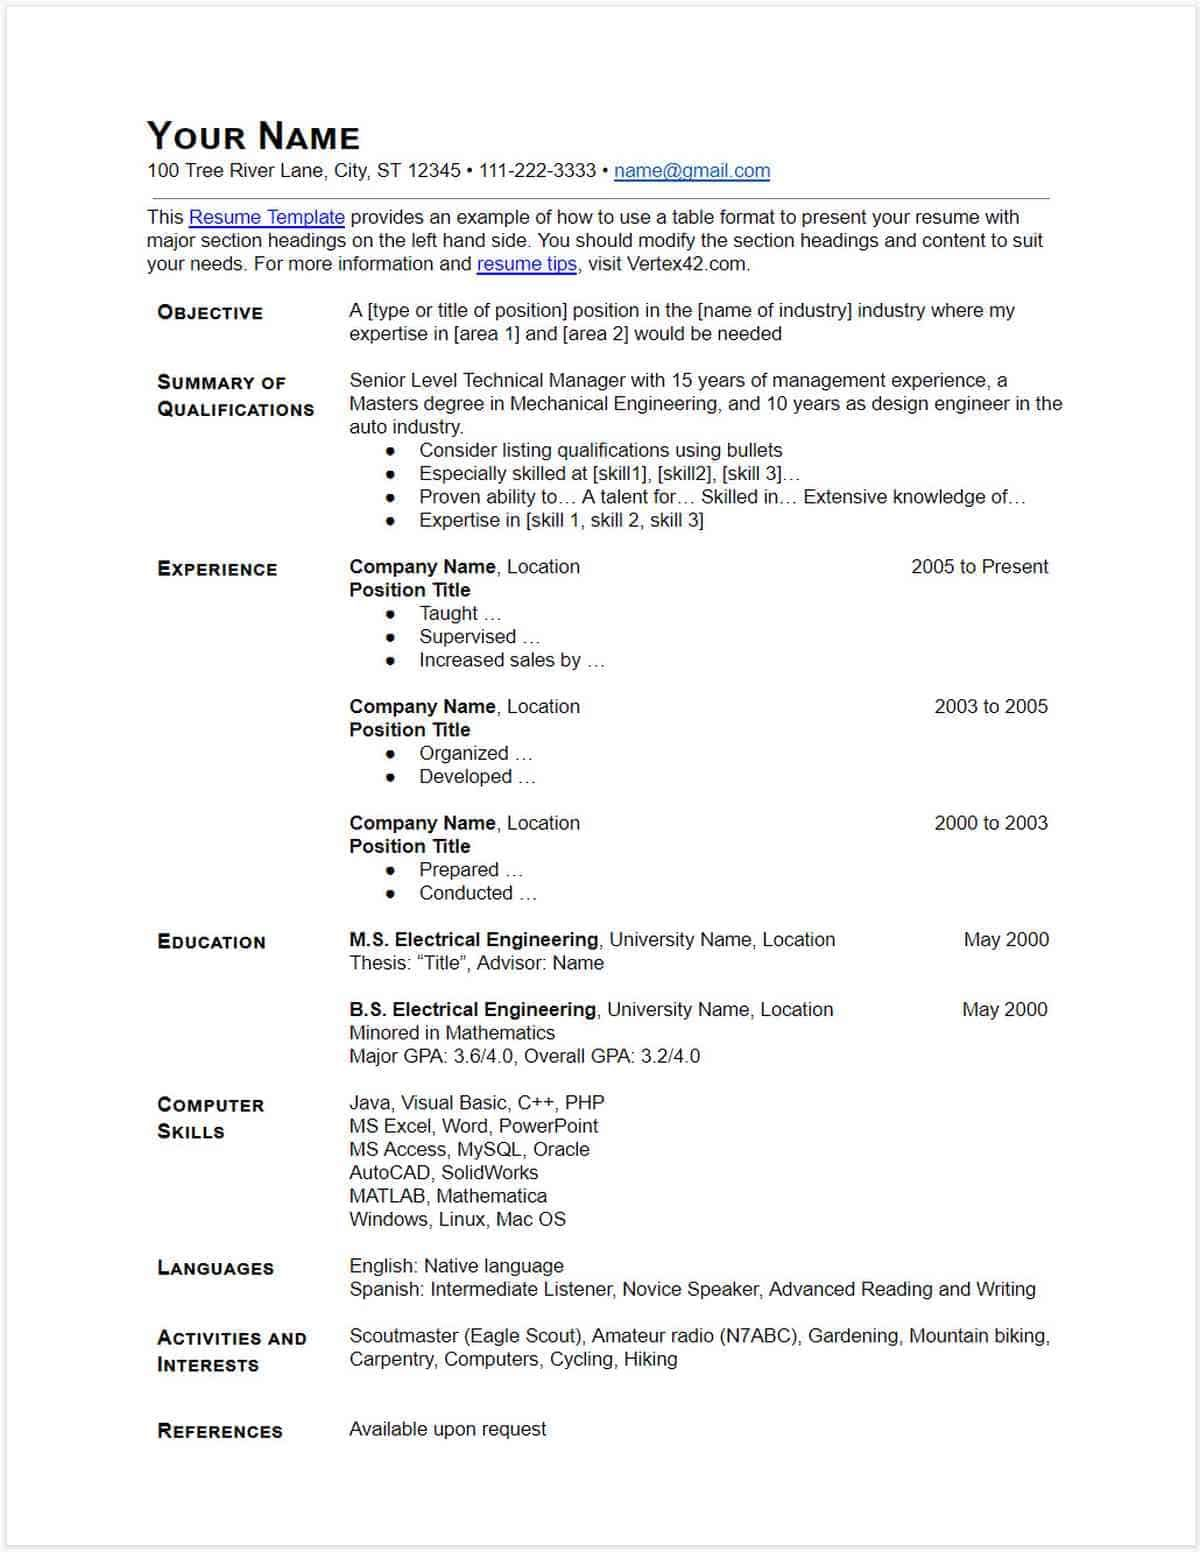 Download Free Blank Resume Form Template in 2020 Free